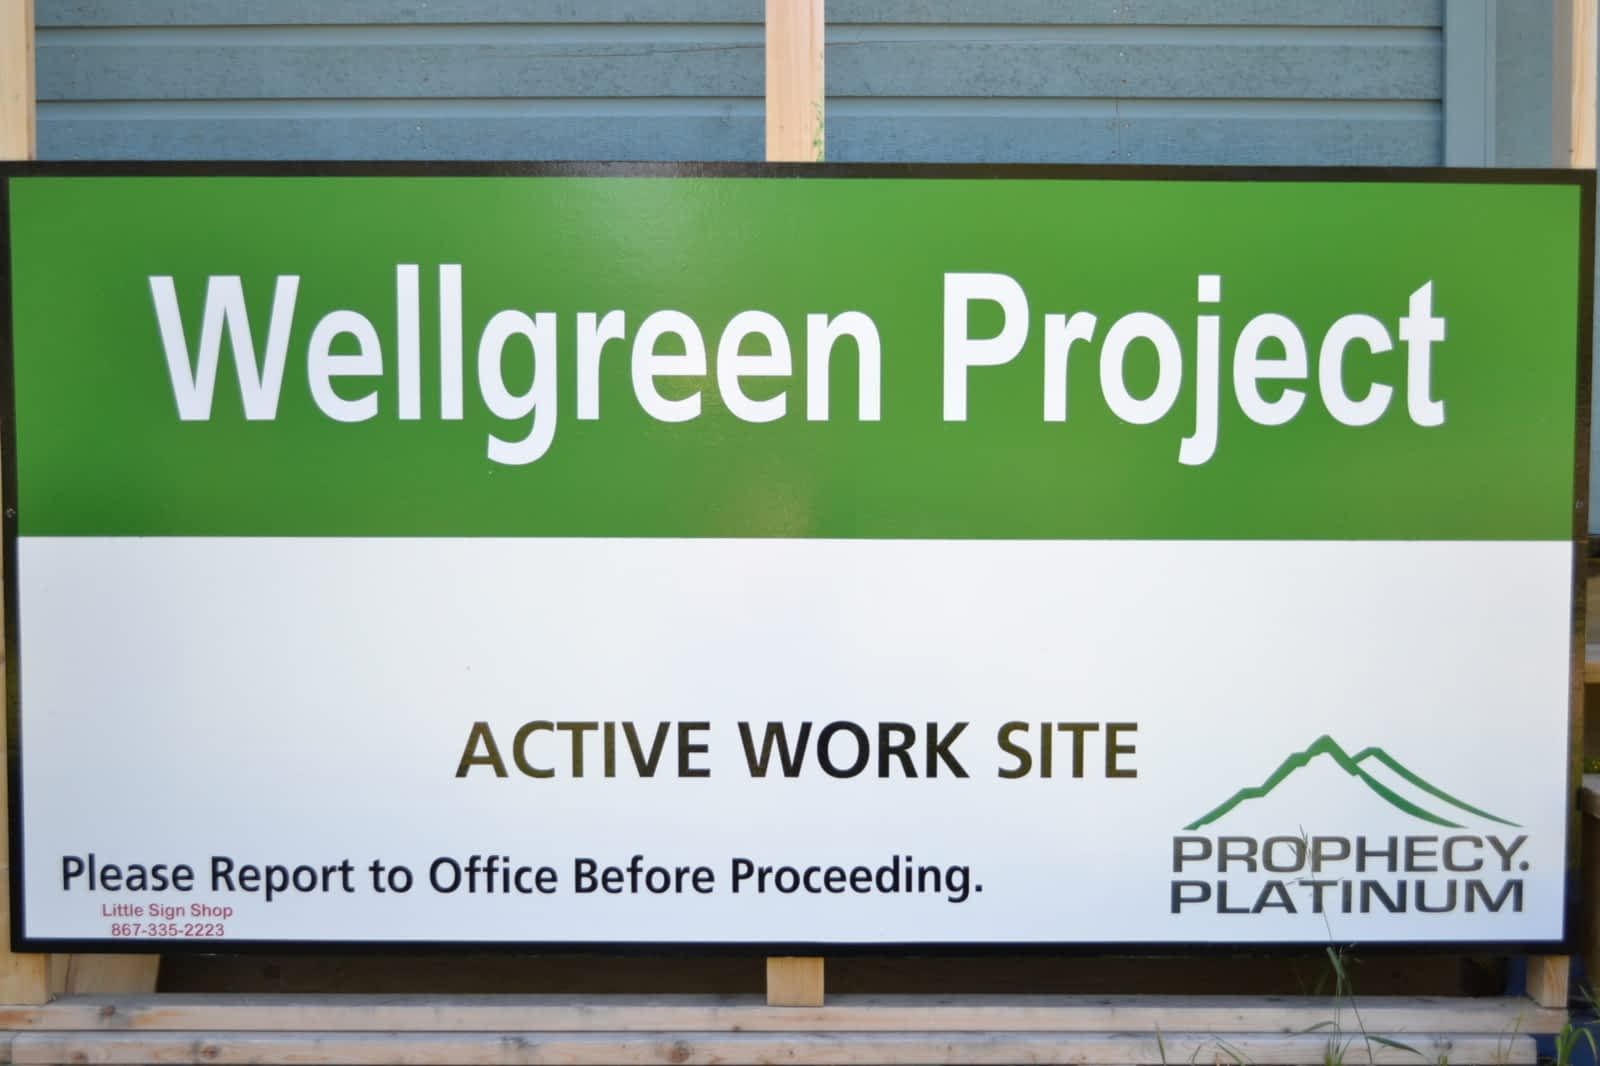 Wellgreen Project